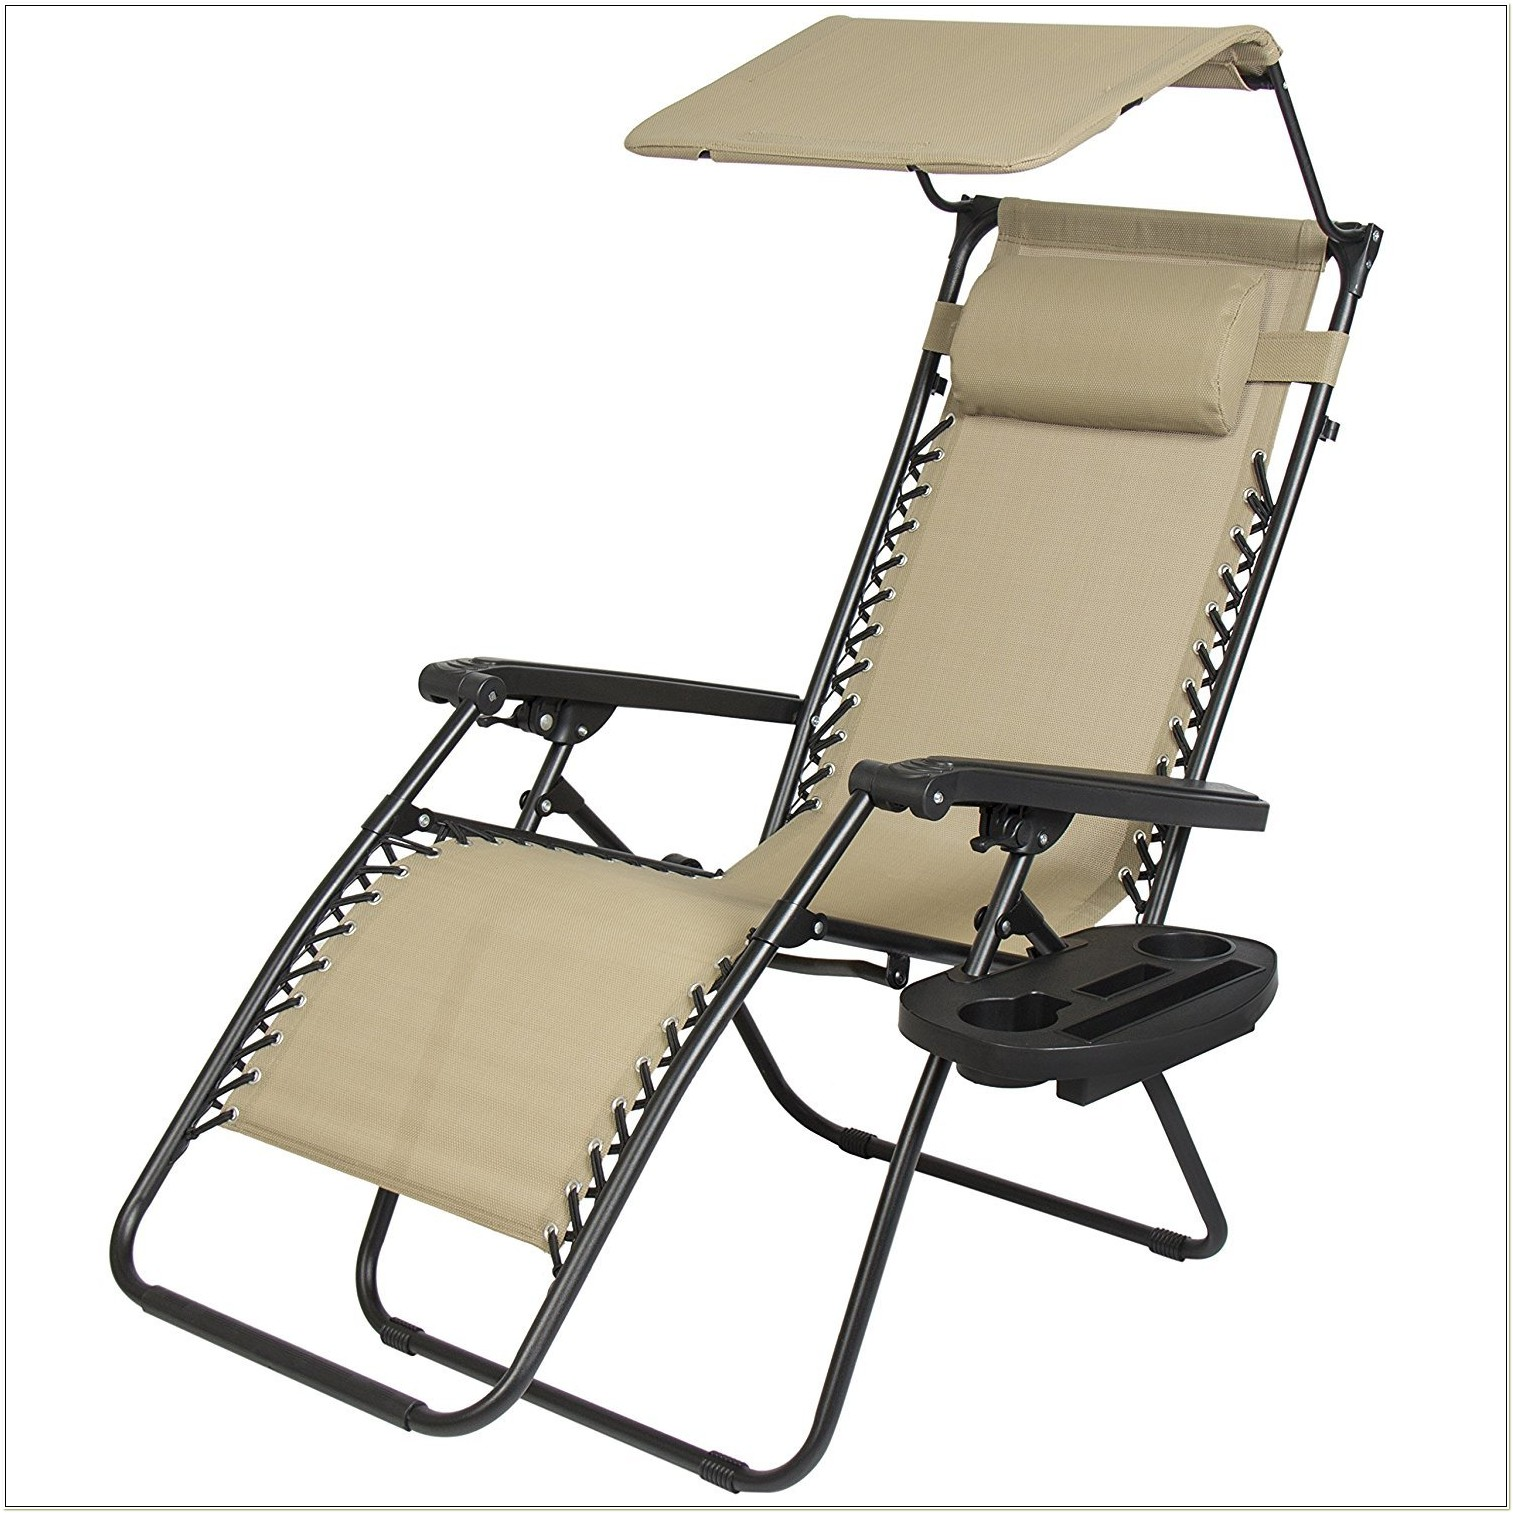 Zero Gravity Lounge Chair With Sunshade